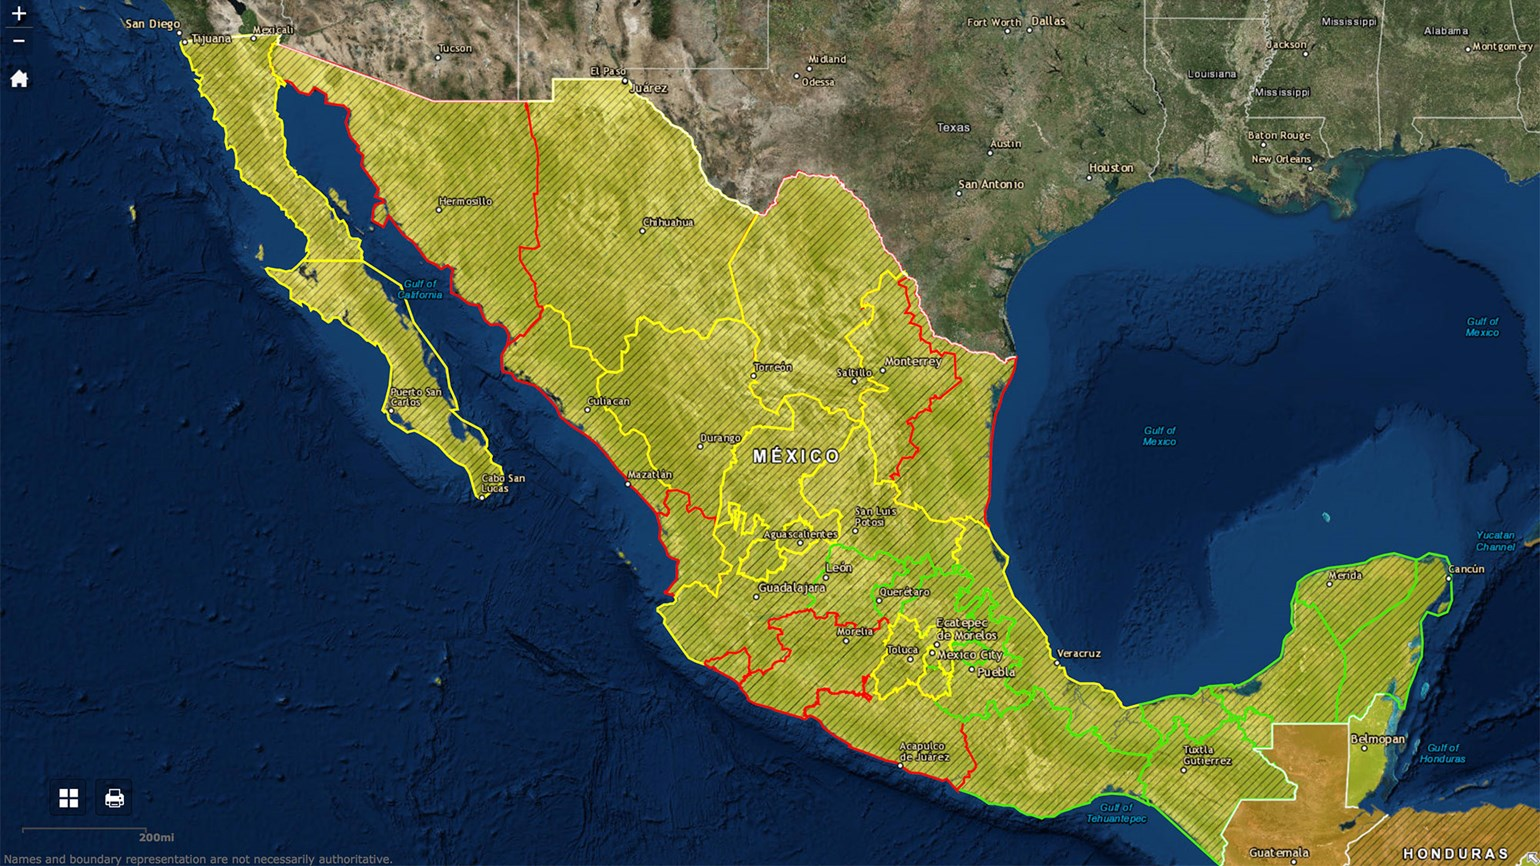 Mexico: New travel advisory system an improvement, but could be better